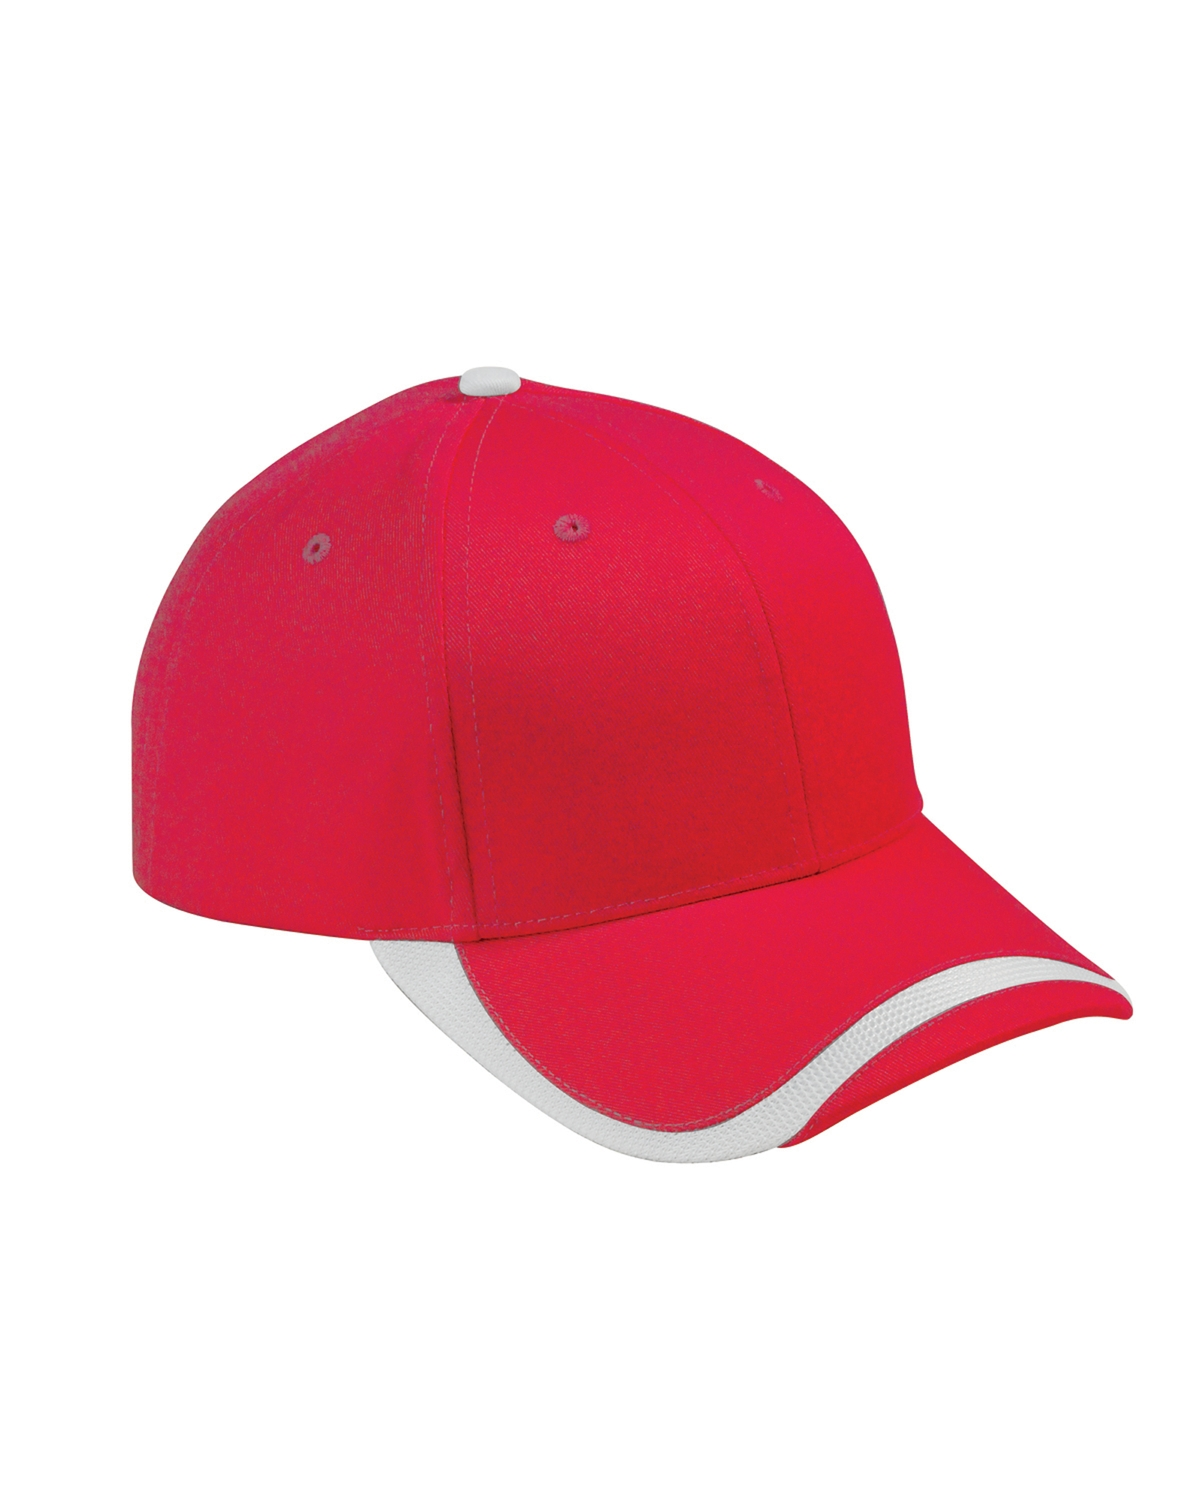 02ce5c8c115 City Sport Caps Baseball Cap – Trendy Fashion